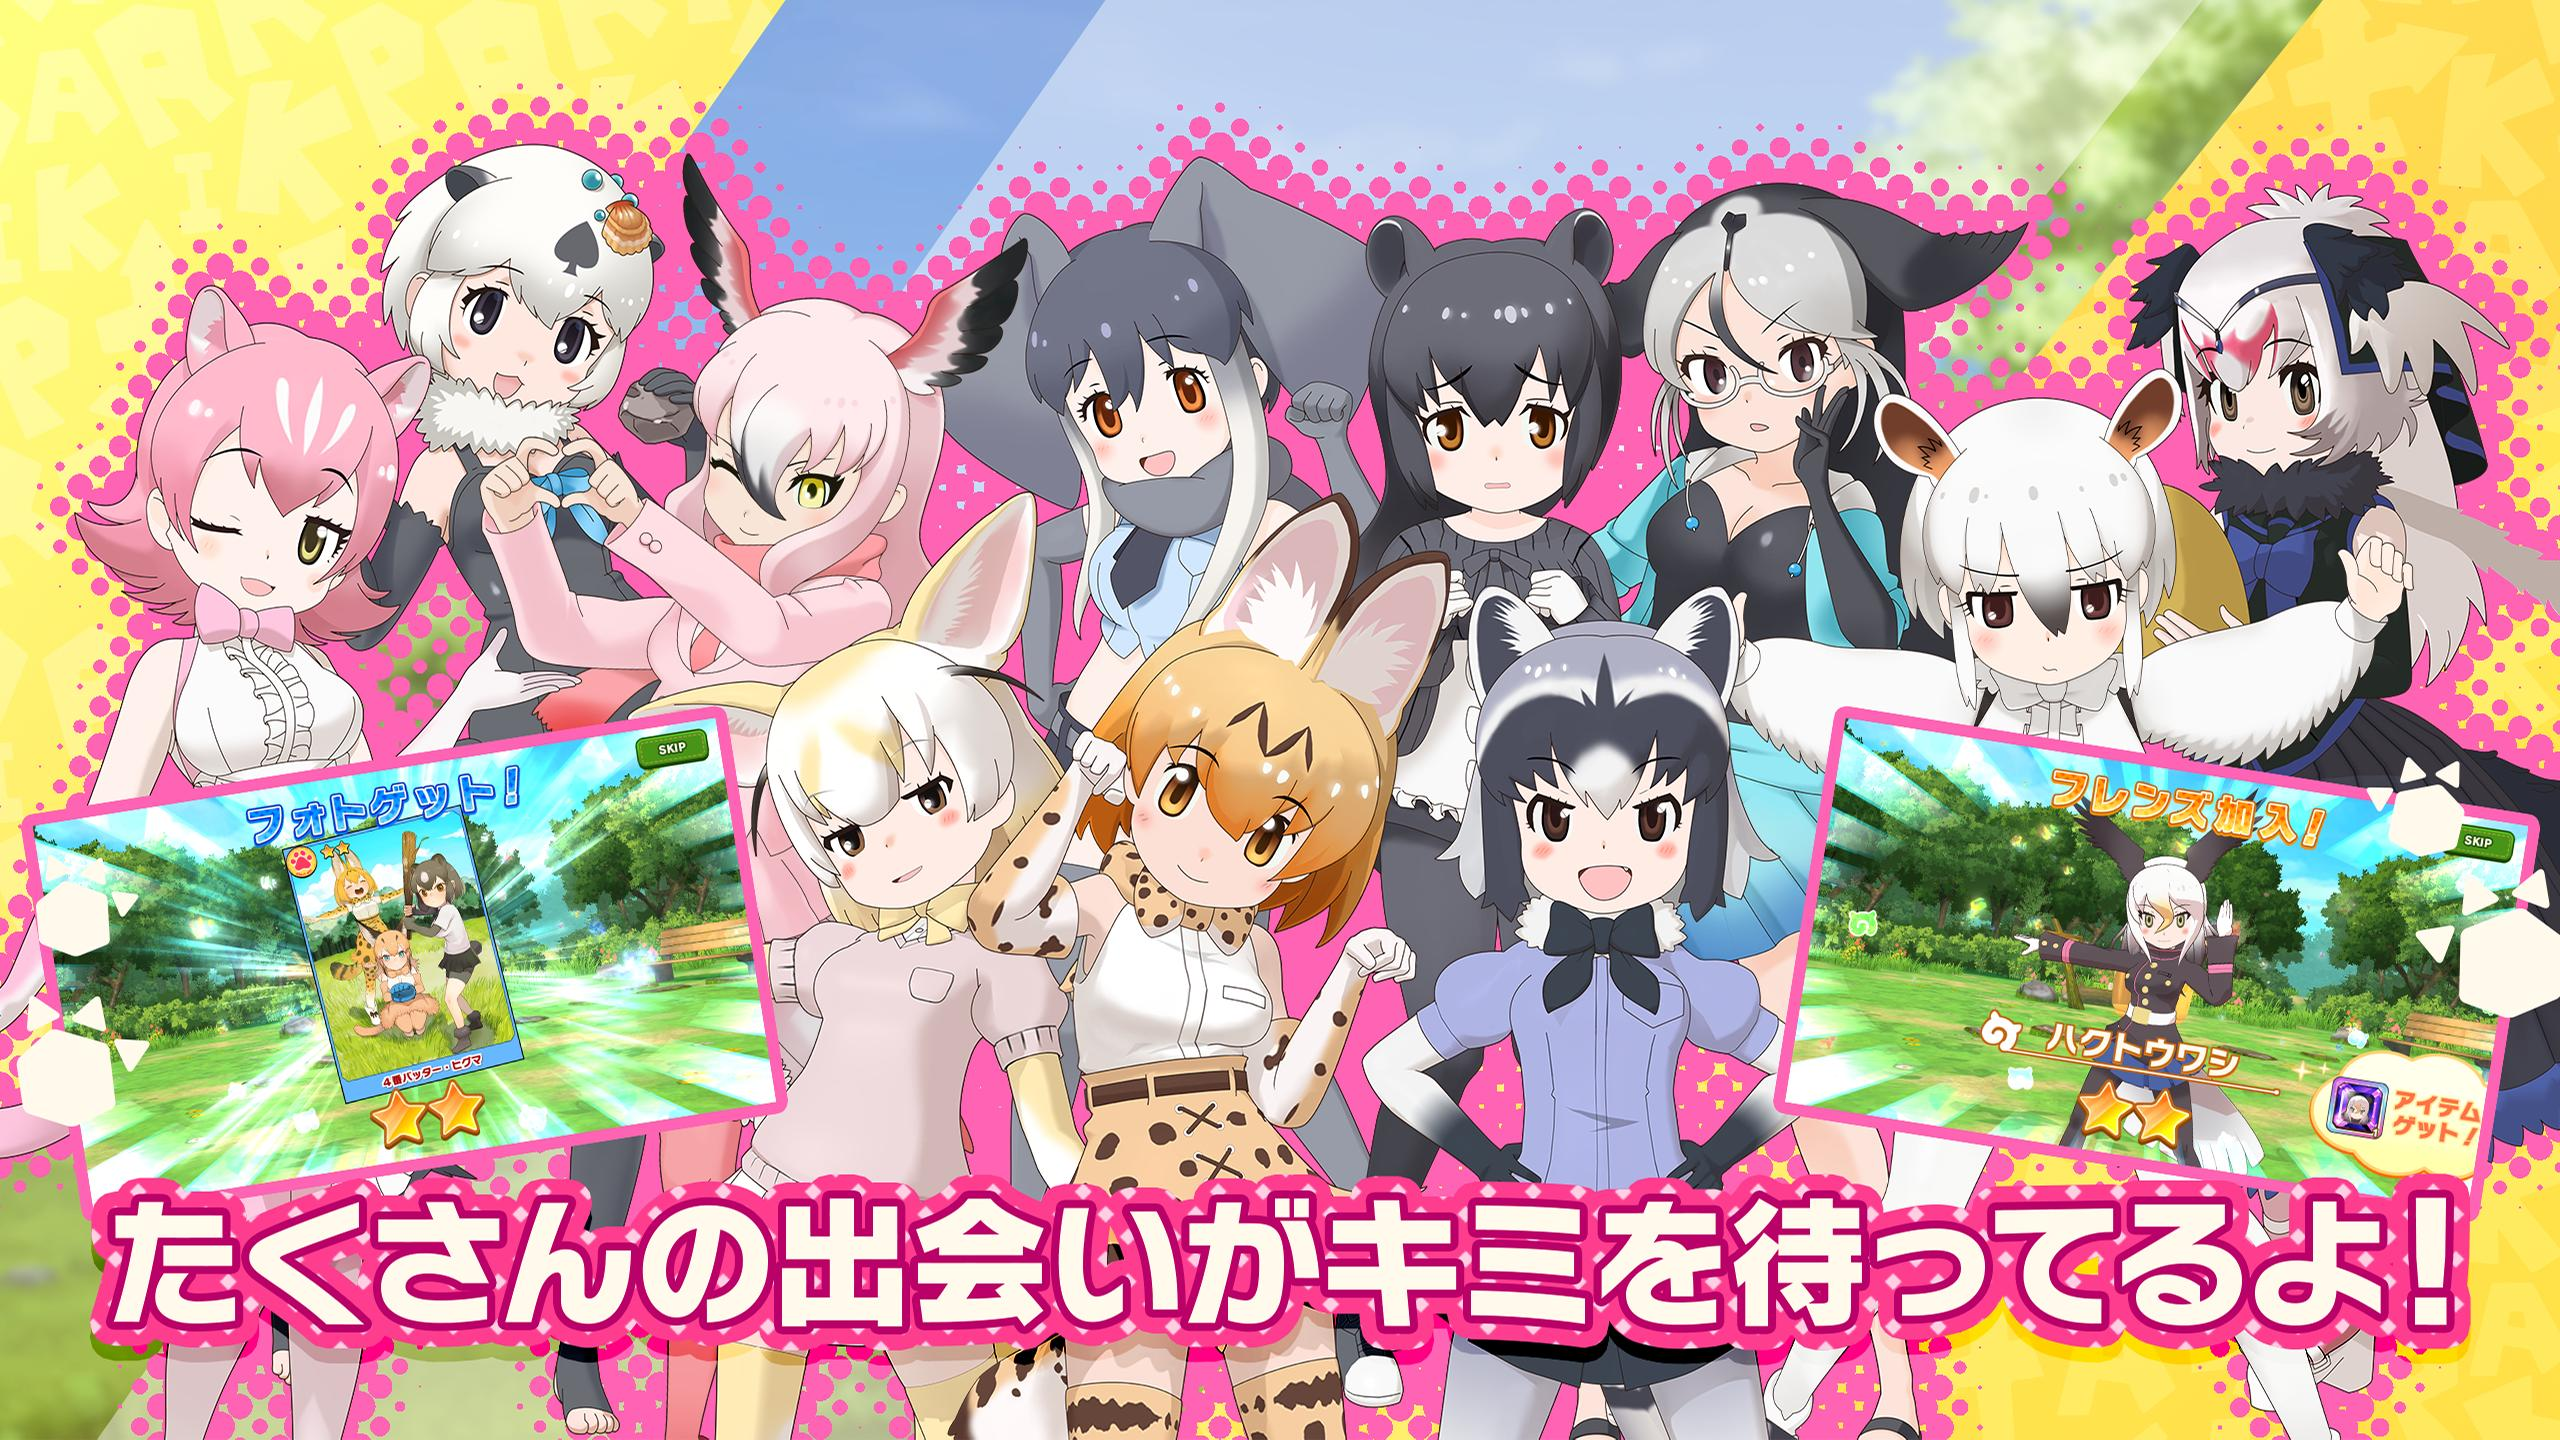 けものフレンズ3 For Android Apk Download